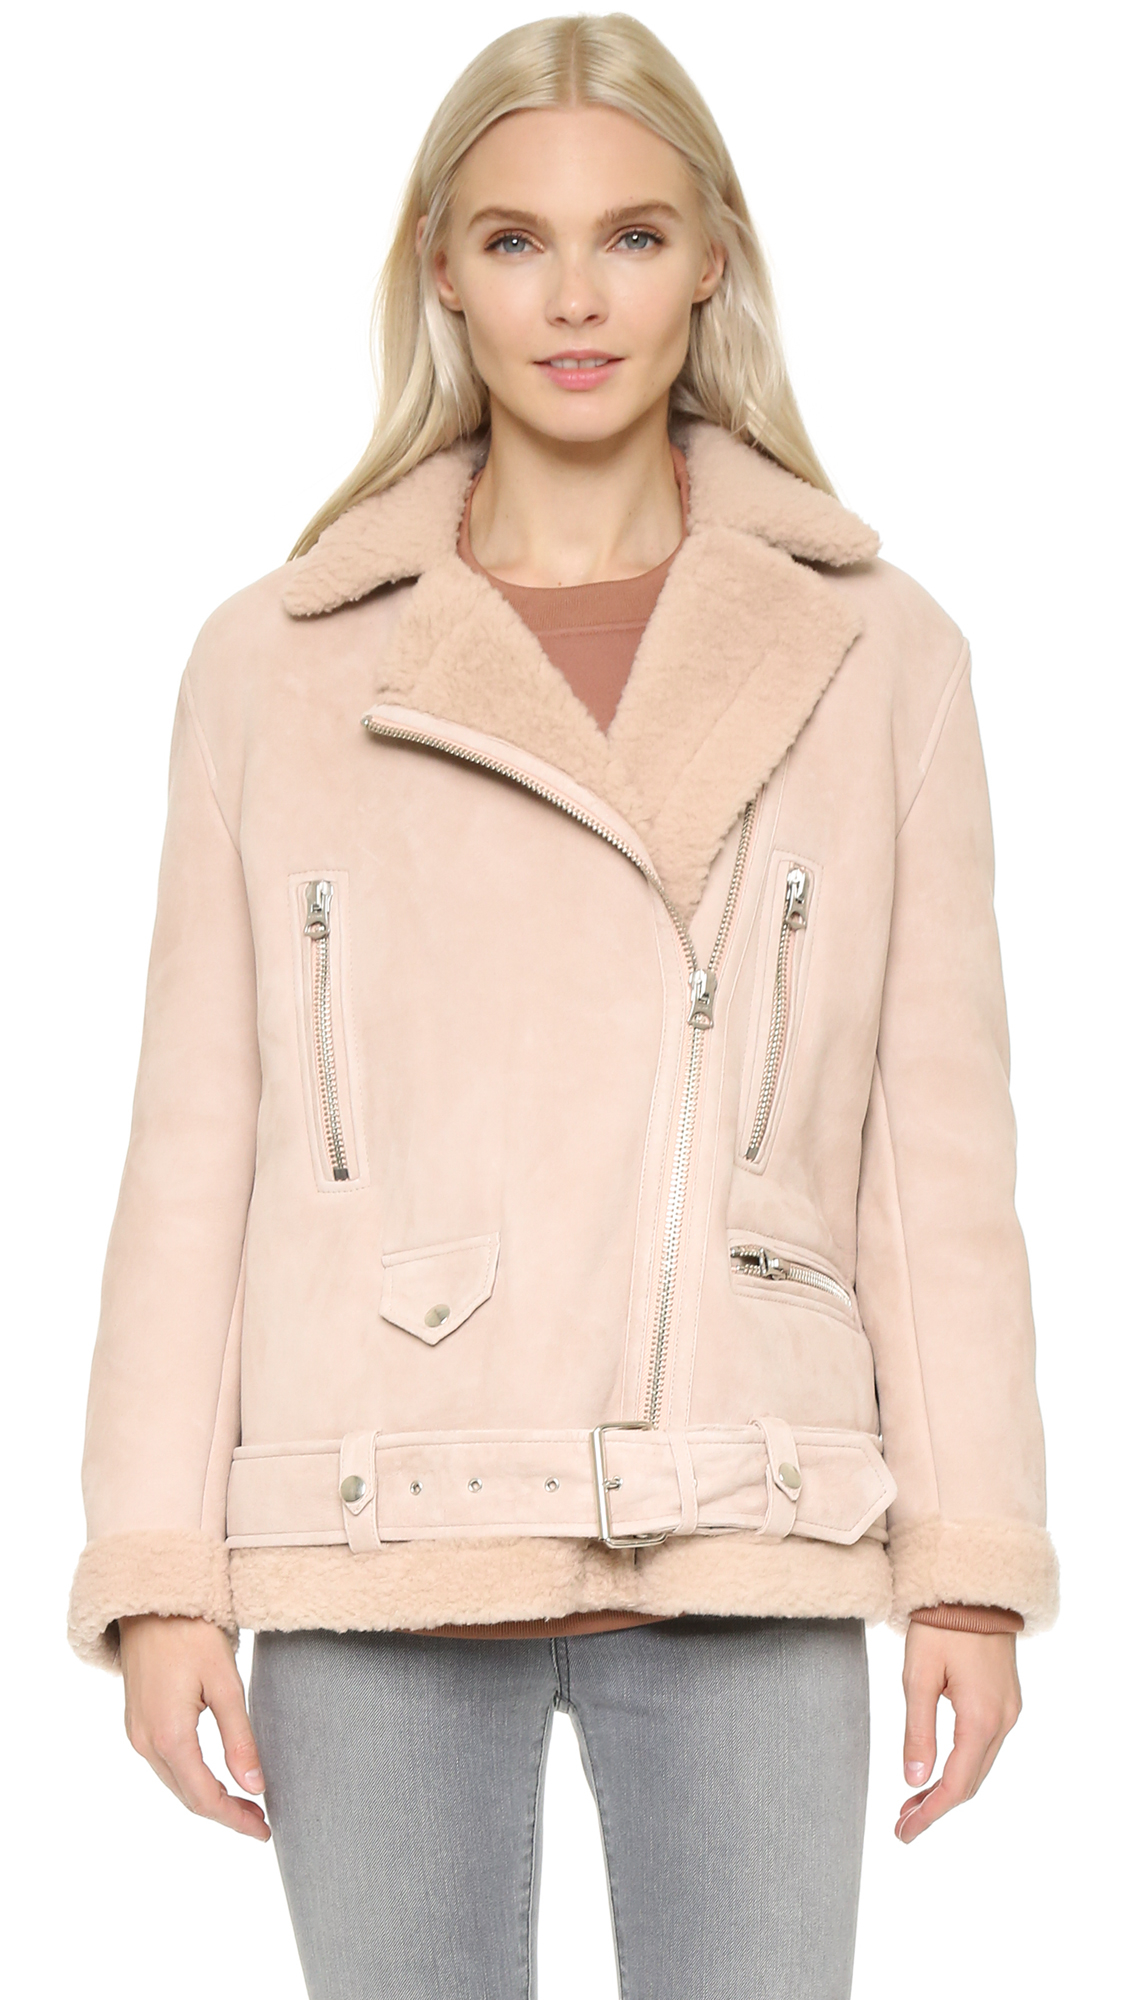 Acne studios More Shearling Jacket - Powder Pink in Natural | Lyst